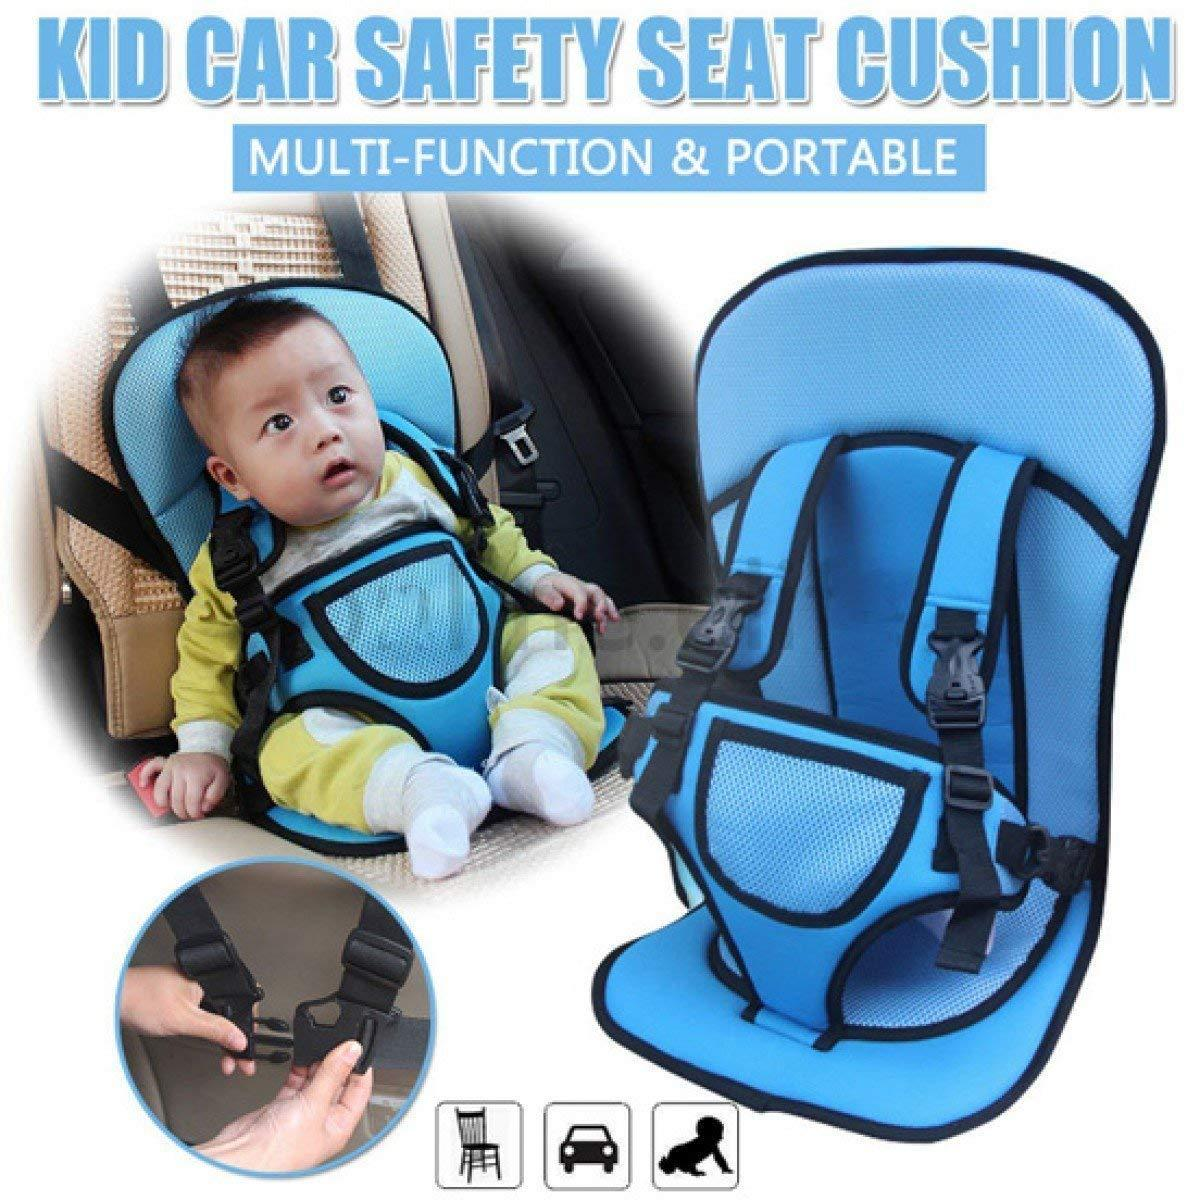 Adjustable Infant Baby Kids Car Cushion Seat With Safety Belt